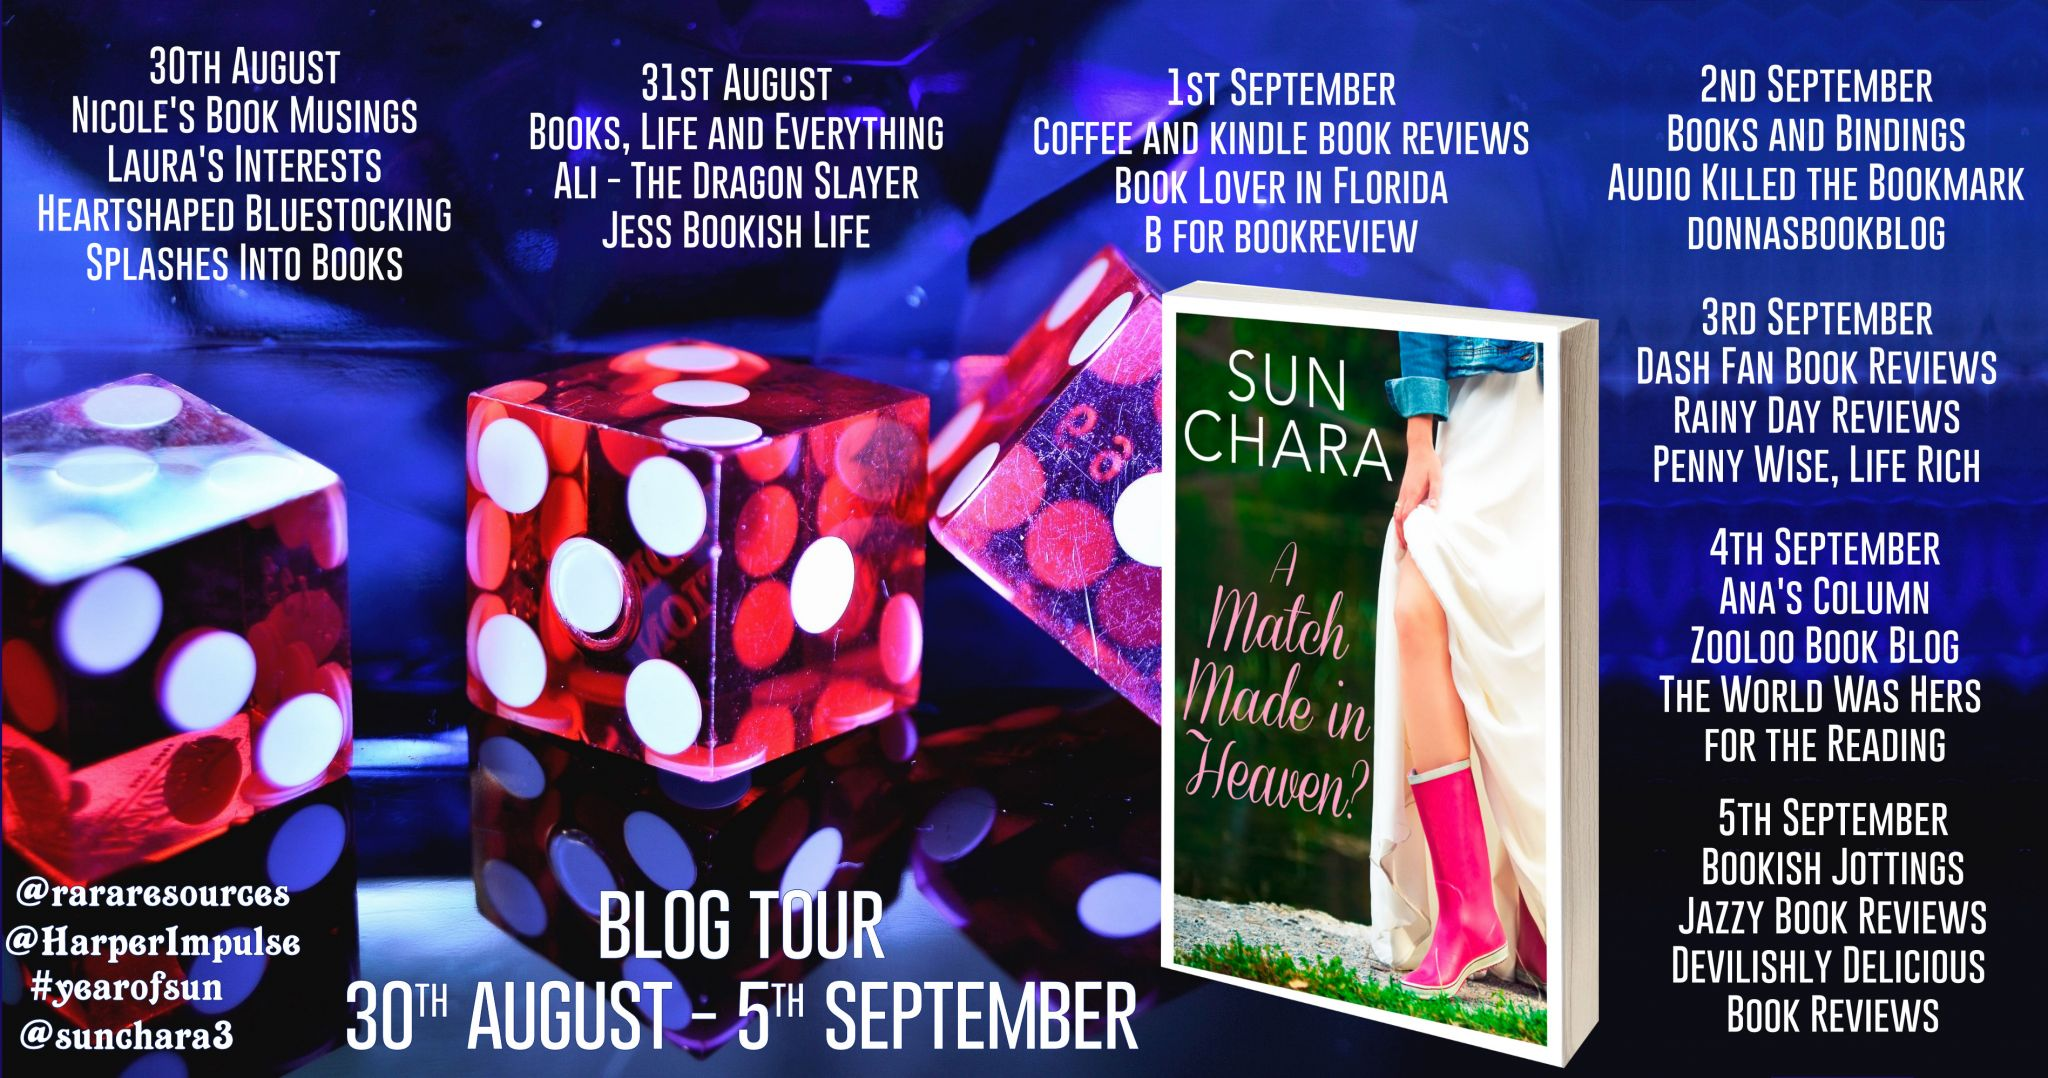 #BookReview of A Match Made in Heaven? by Sun Chara @sunchara3 @HarperImpulse @rararesources #giveaway